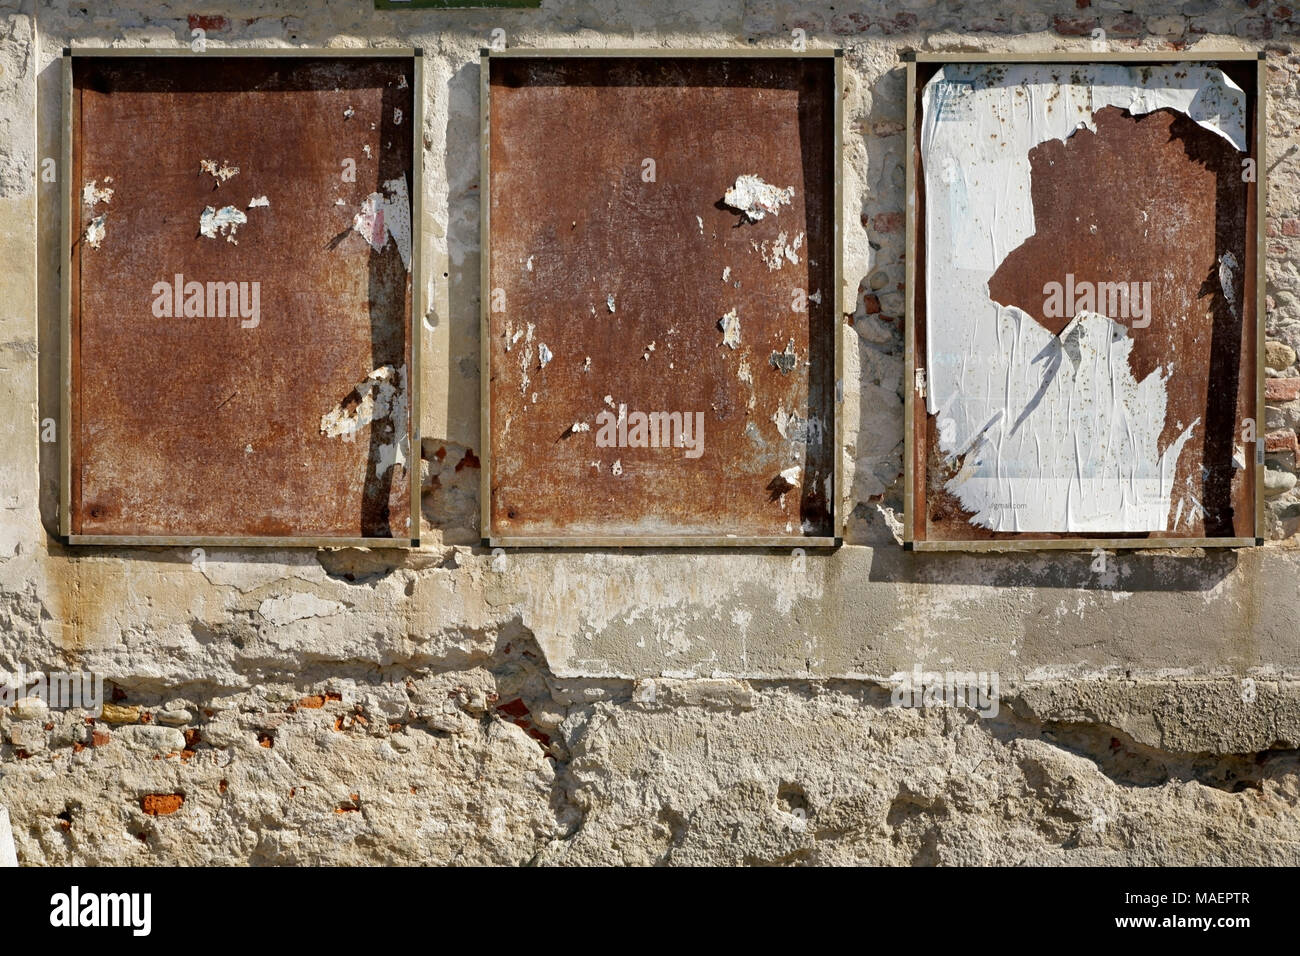 Three old rusty noticeboard frames on stone wall, Cuneo, Italy. - Stock Image